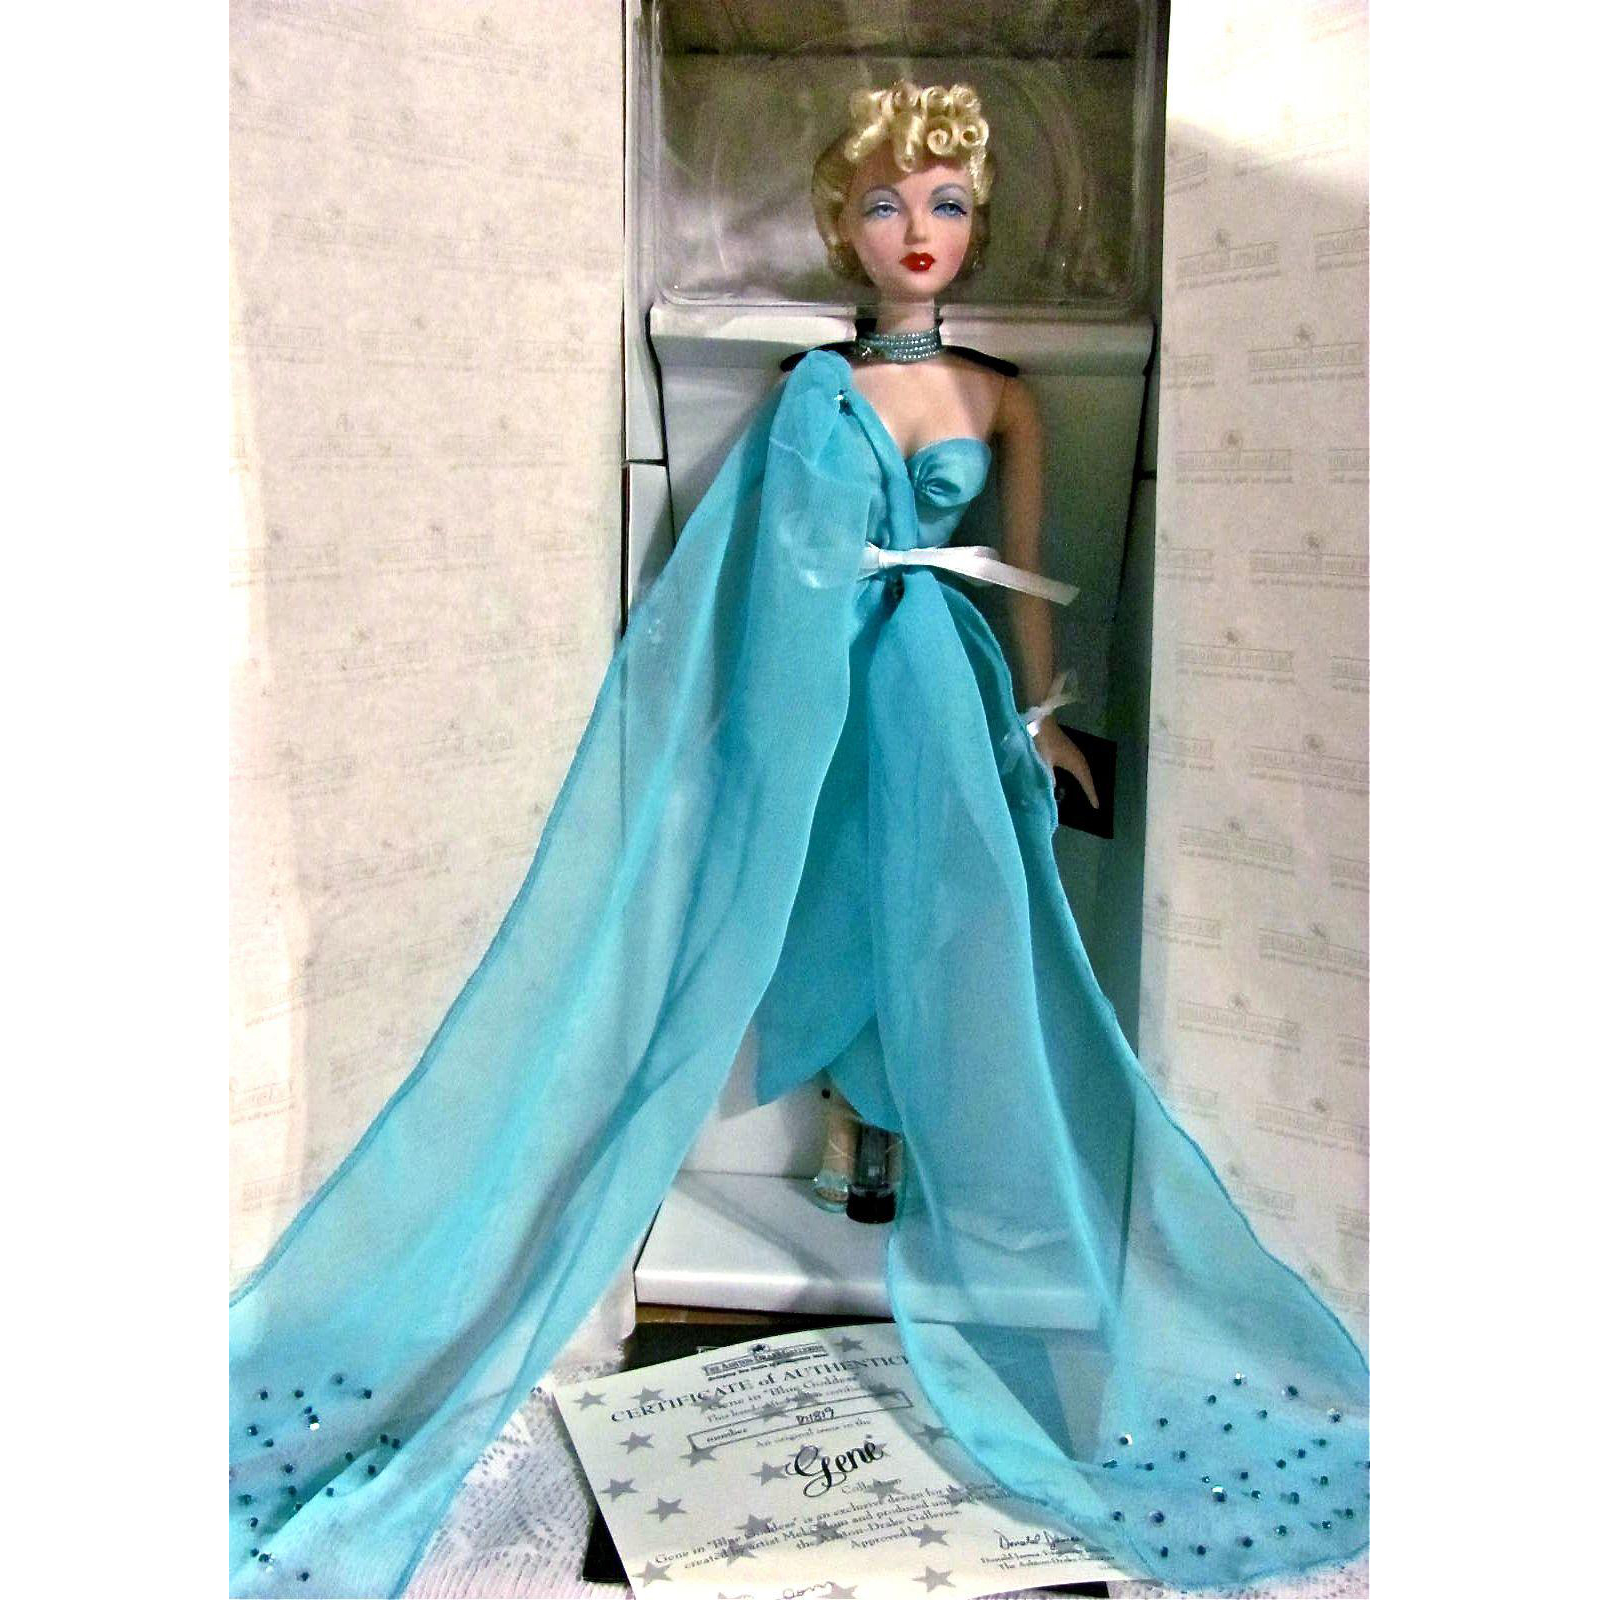 Gene Doll In Blue Goddess Mint in Box Signed by Mel Odom Complete With Original Shipper Vintage 1995-96